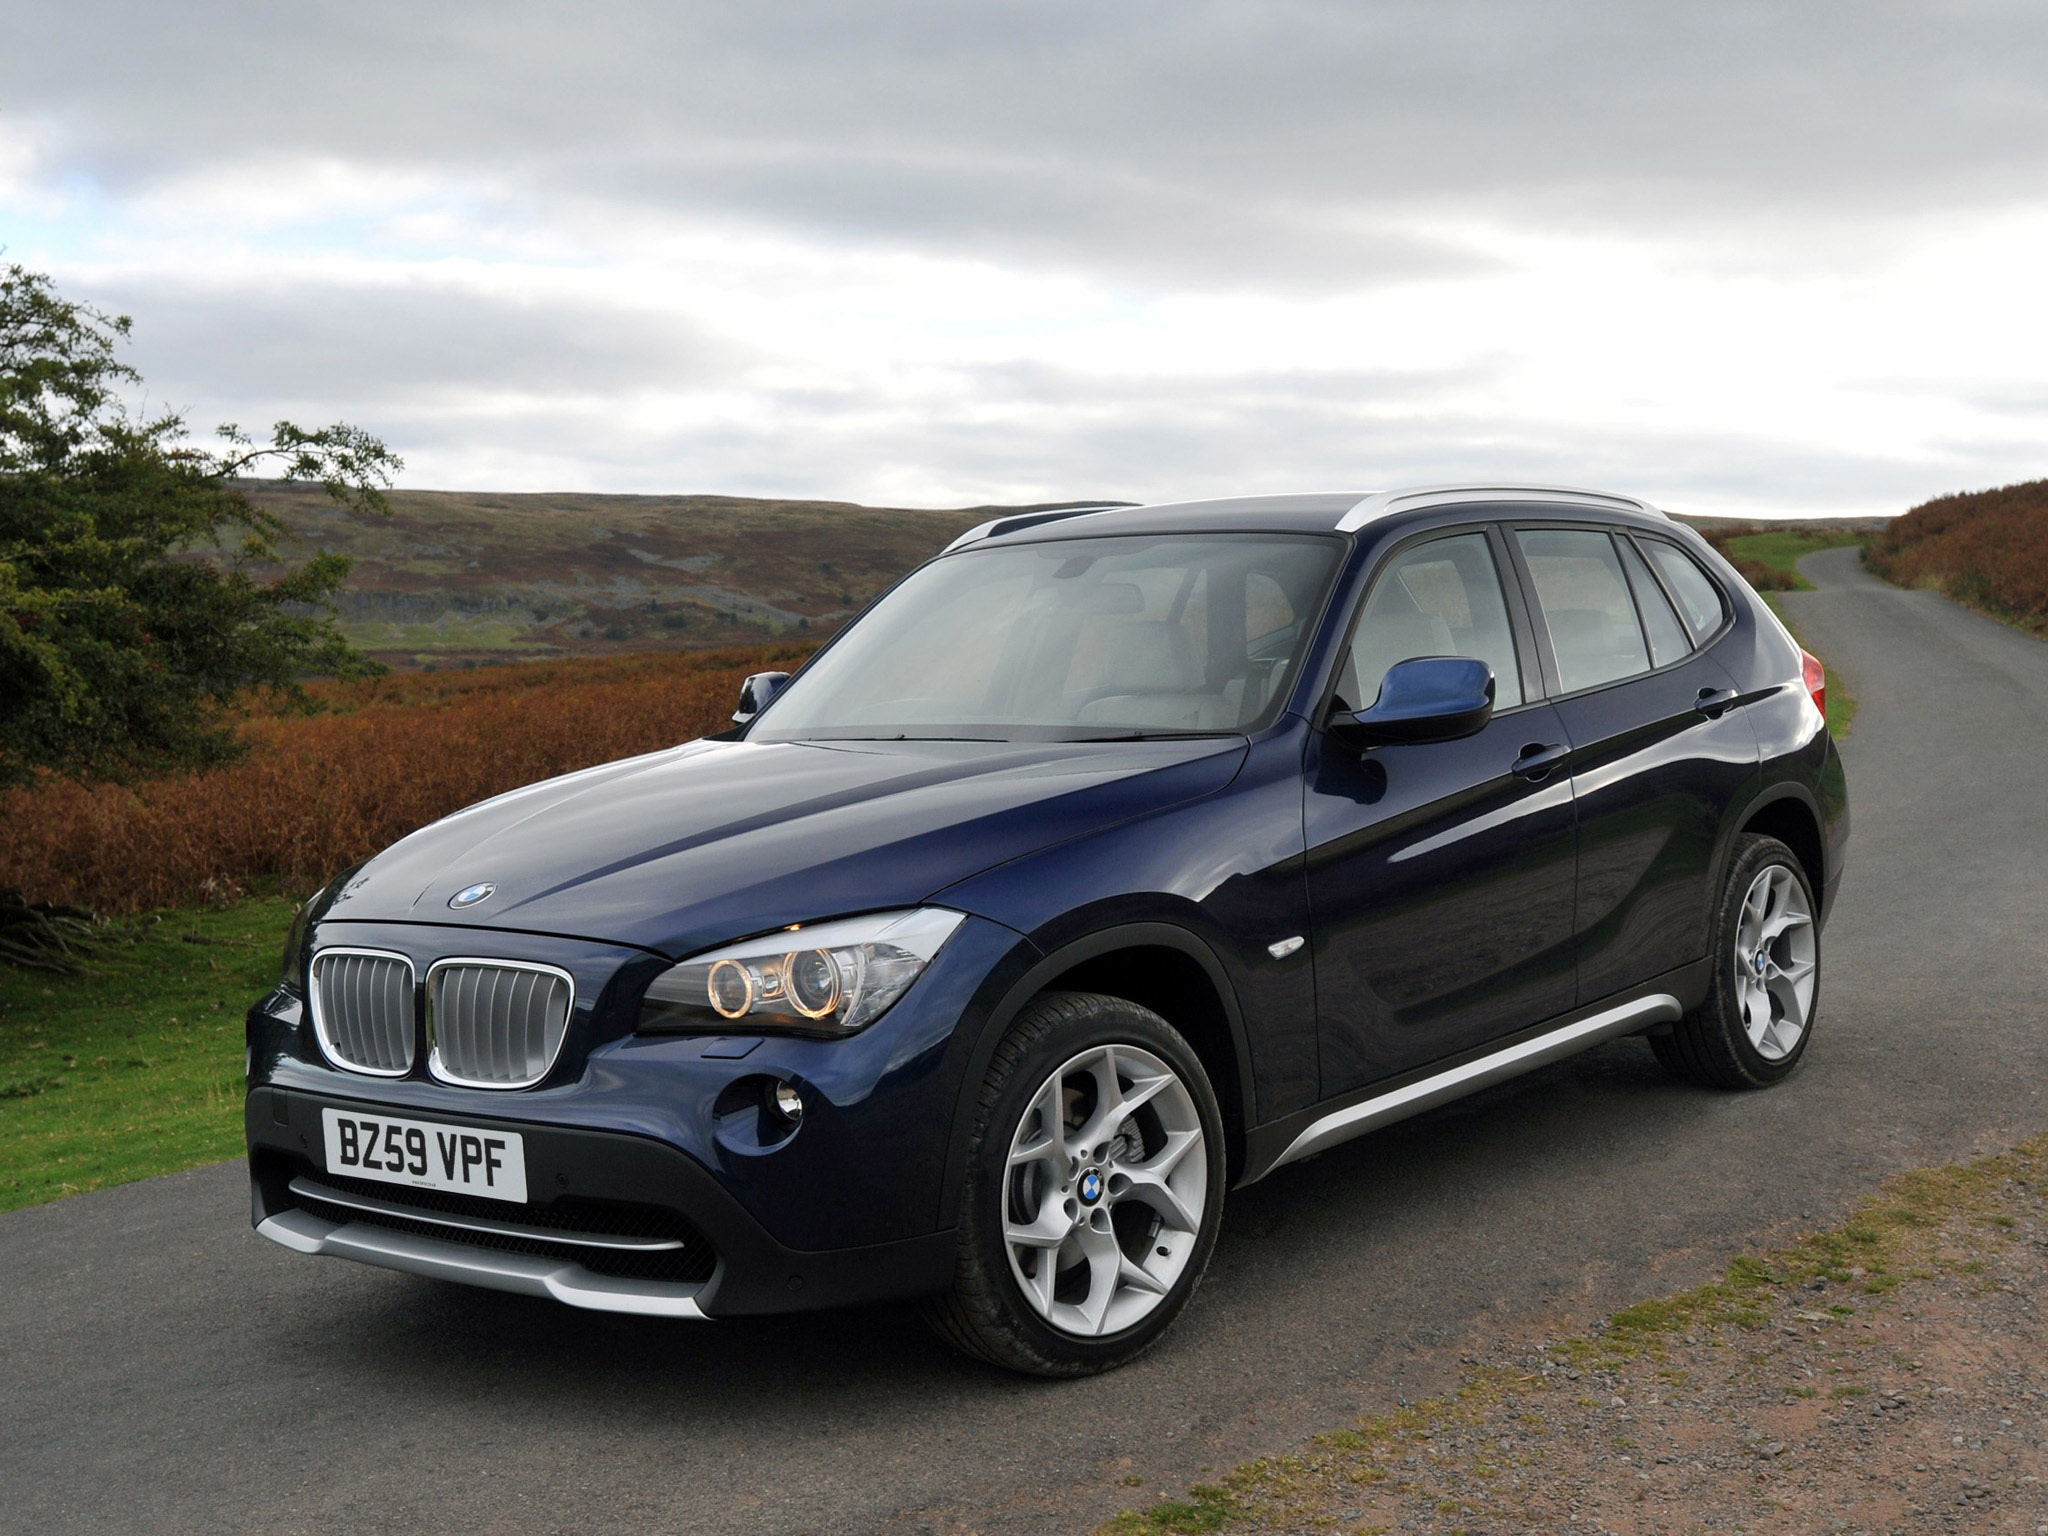 Bmw X1 Xdrive20d Uk E84 2009 Bmw X1 Xdrive20d Uk E84 2009